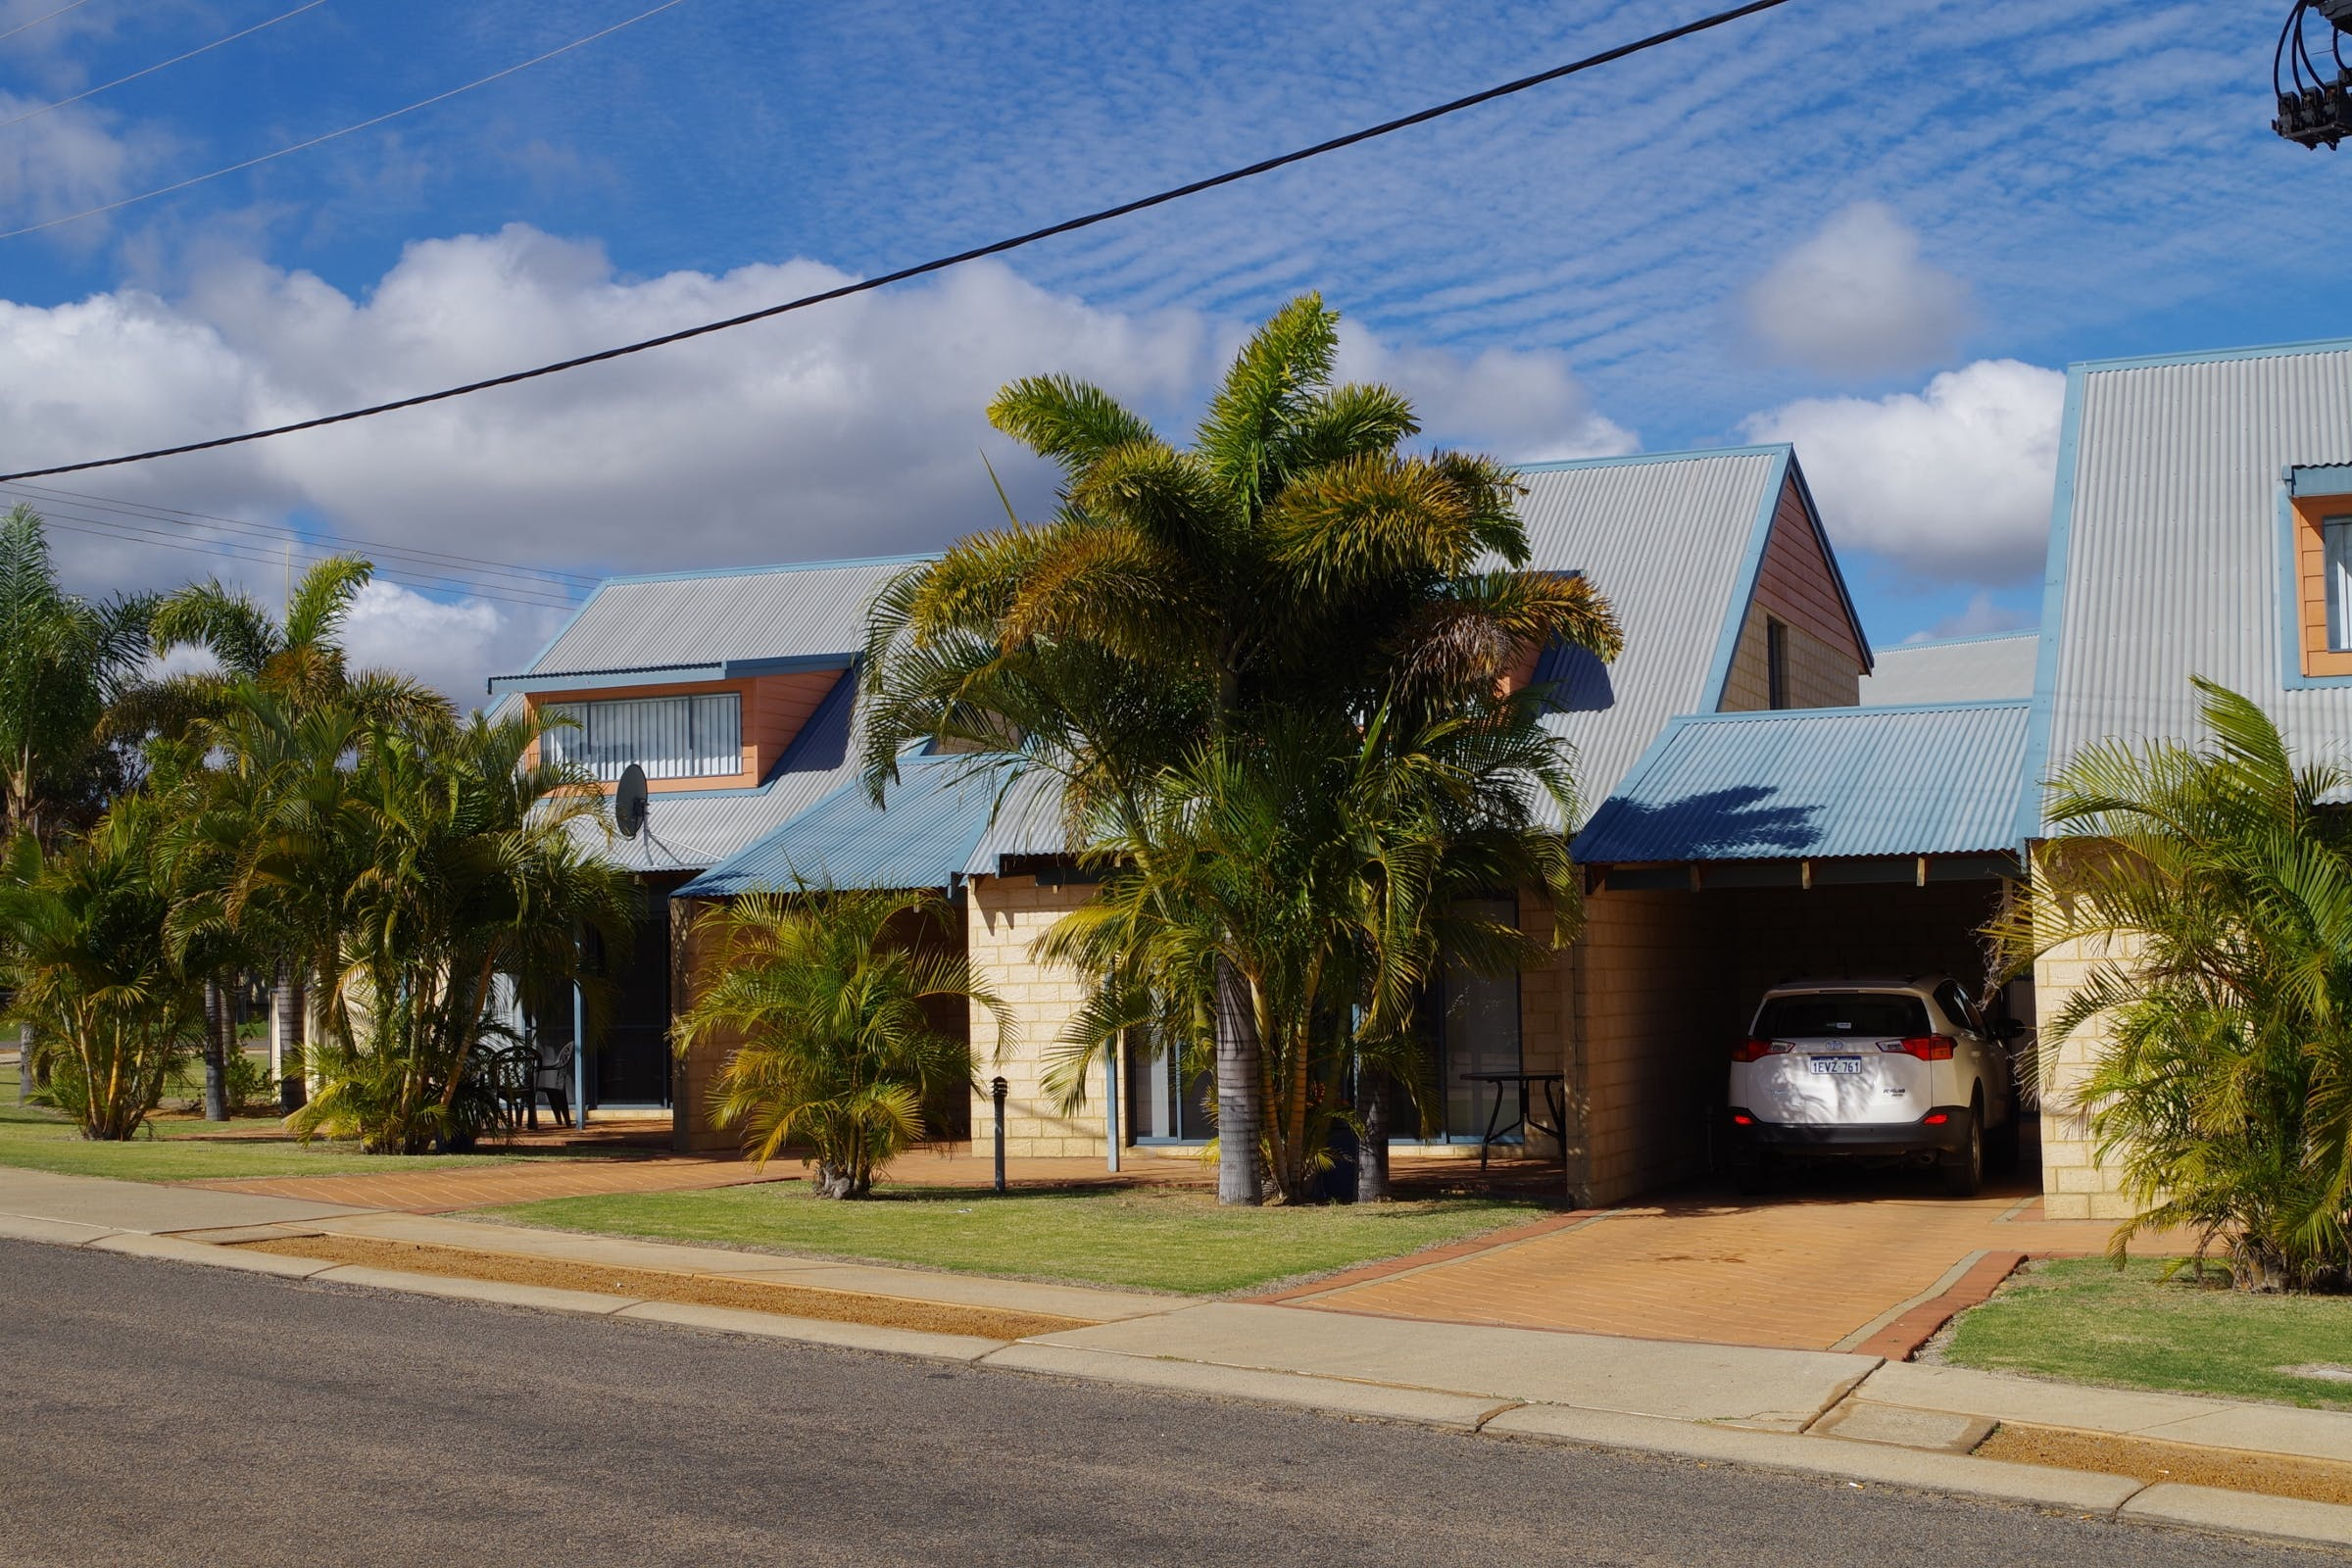 Looking for Kalbarri accommodation service? Kalbarri Hotels with One and Two bedroom Kalbarri holiday homes